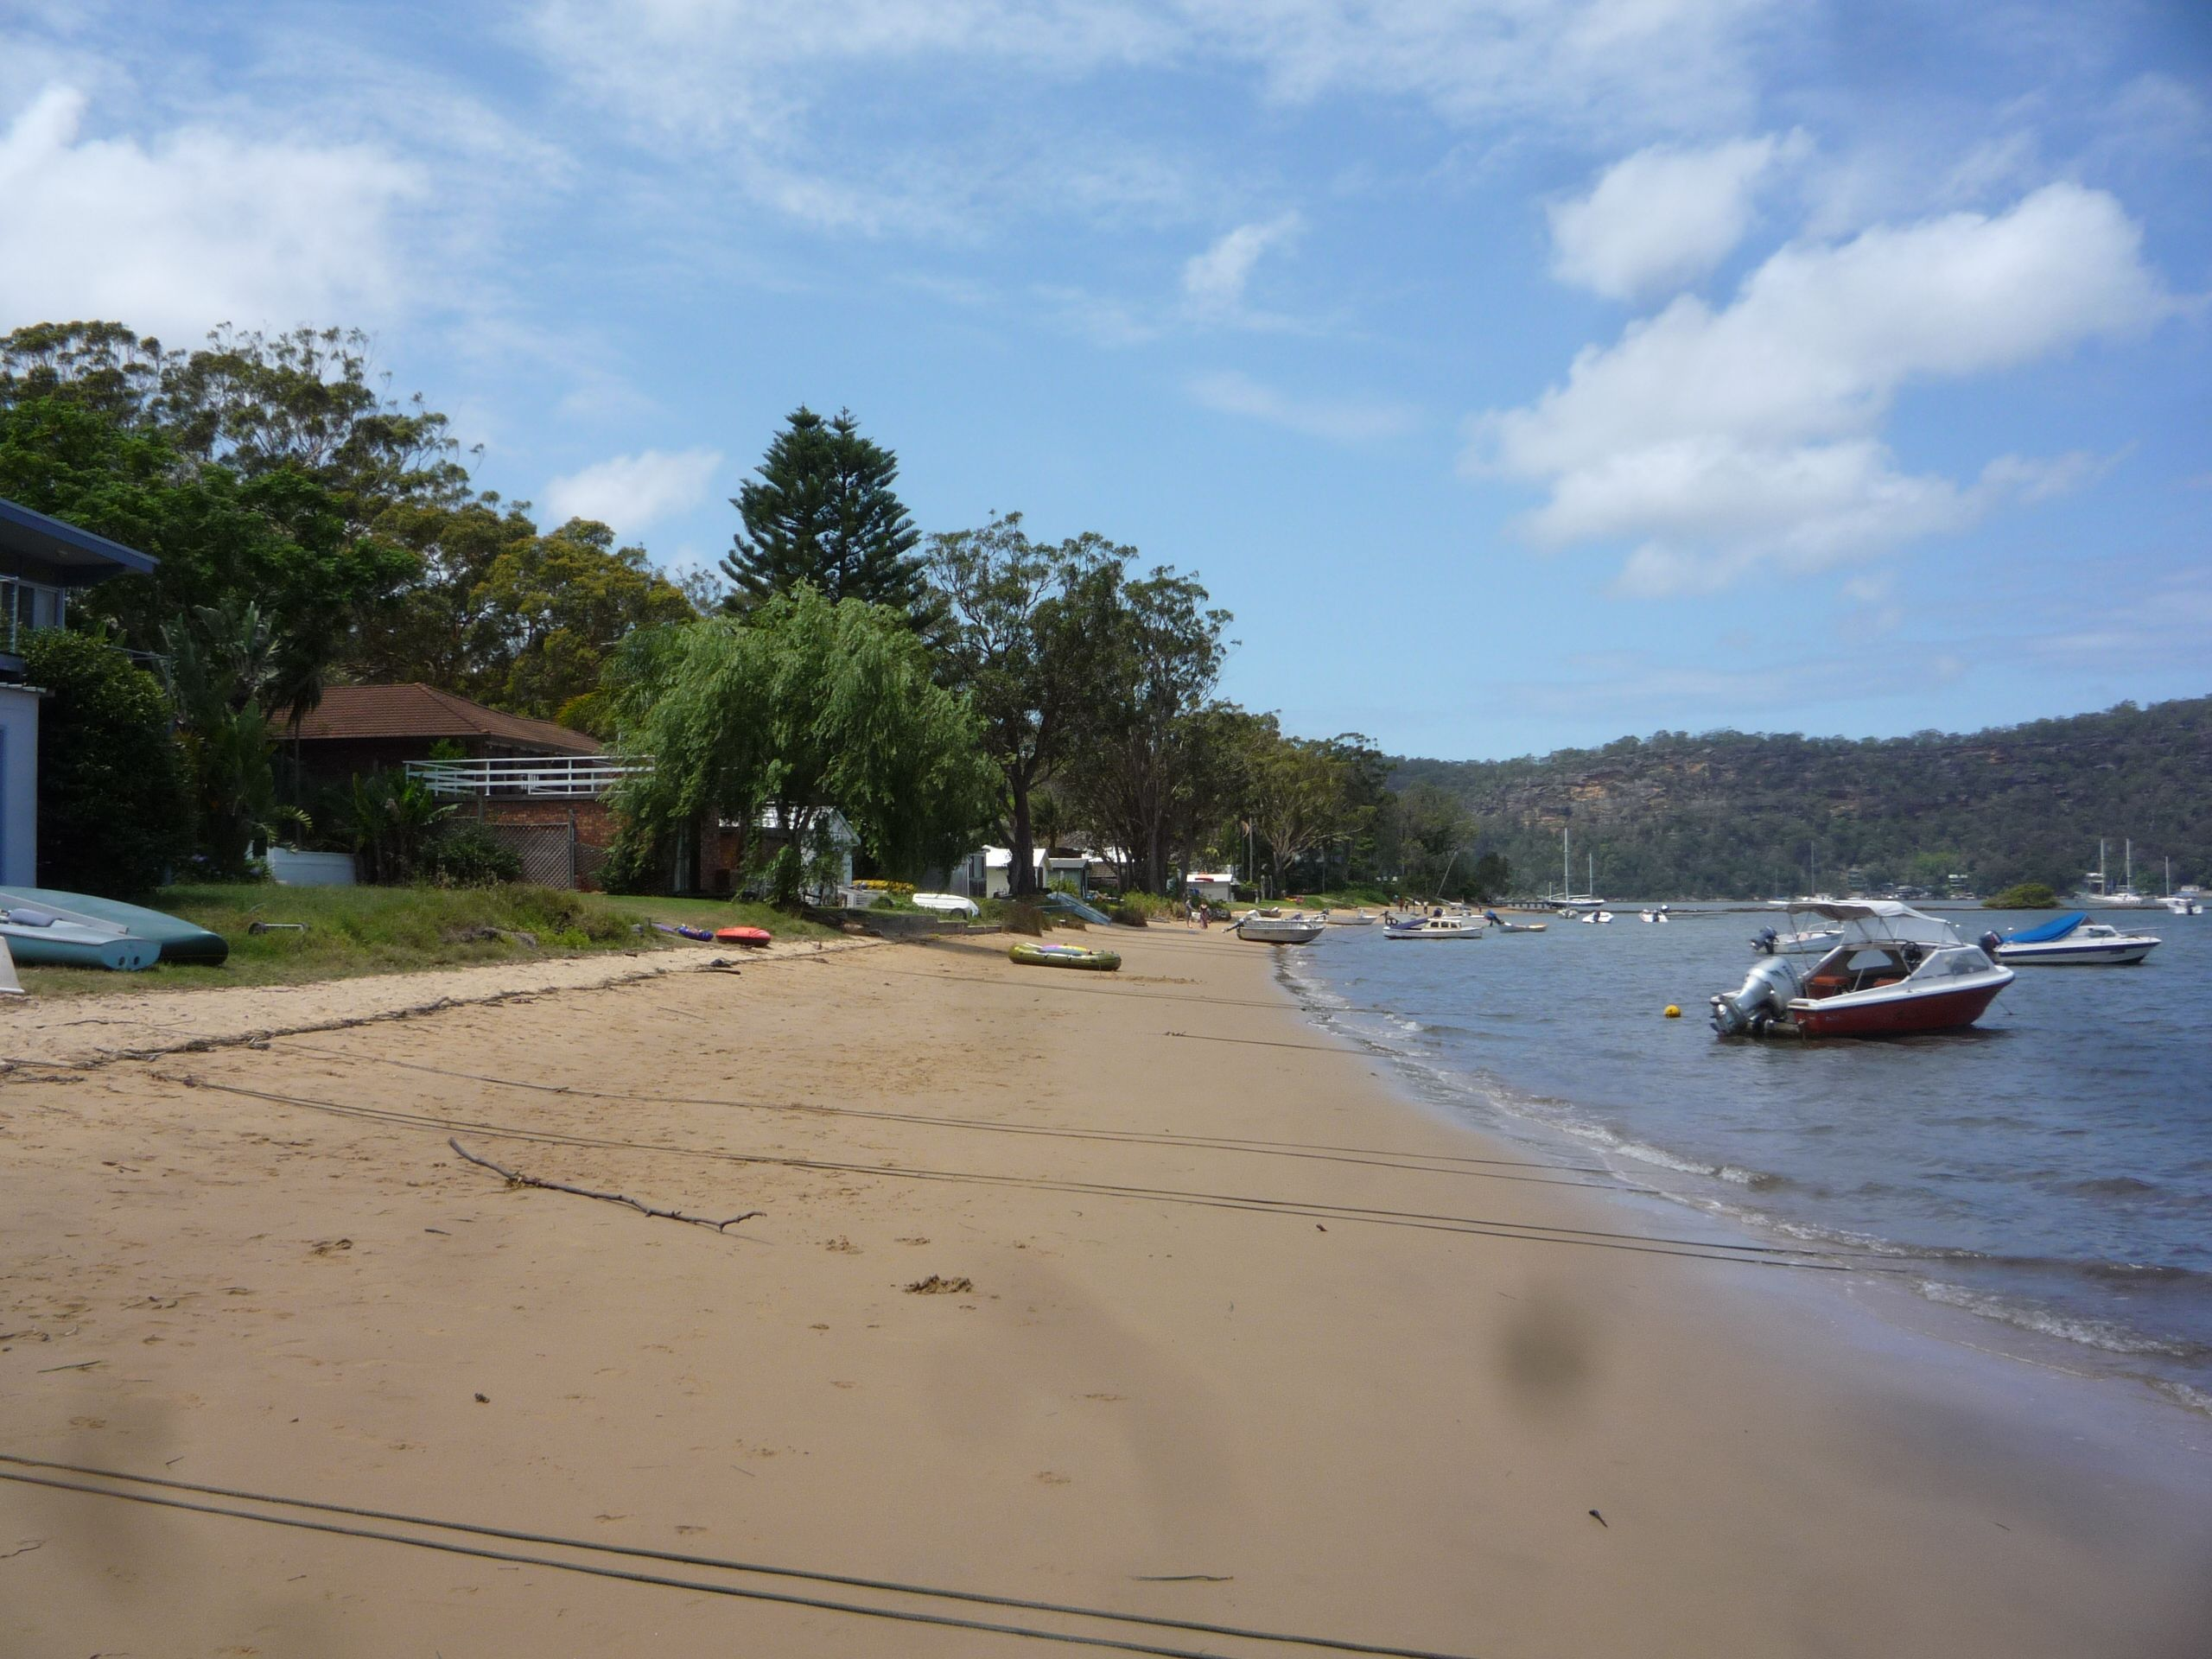 One of the beach of Dangar island, Hawkesbury river